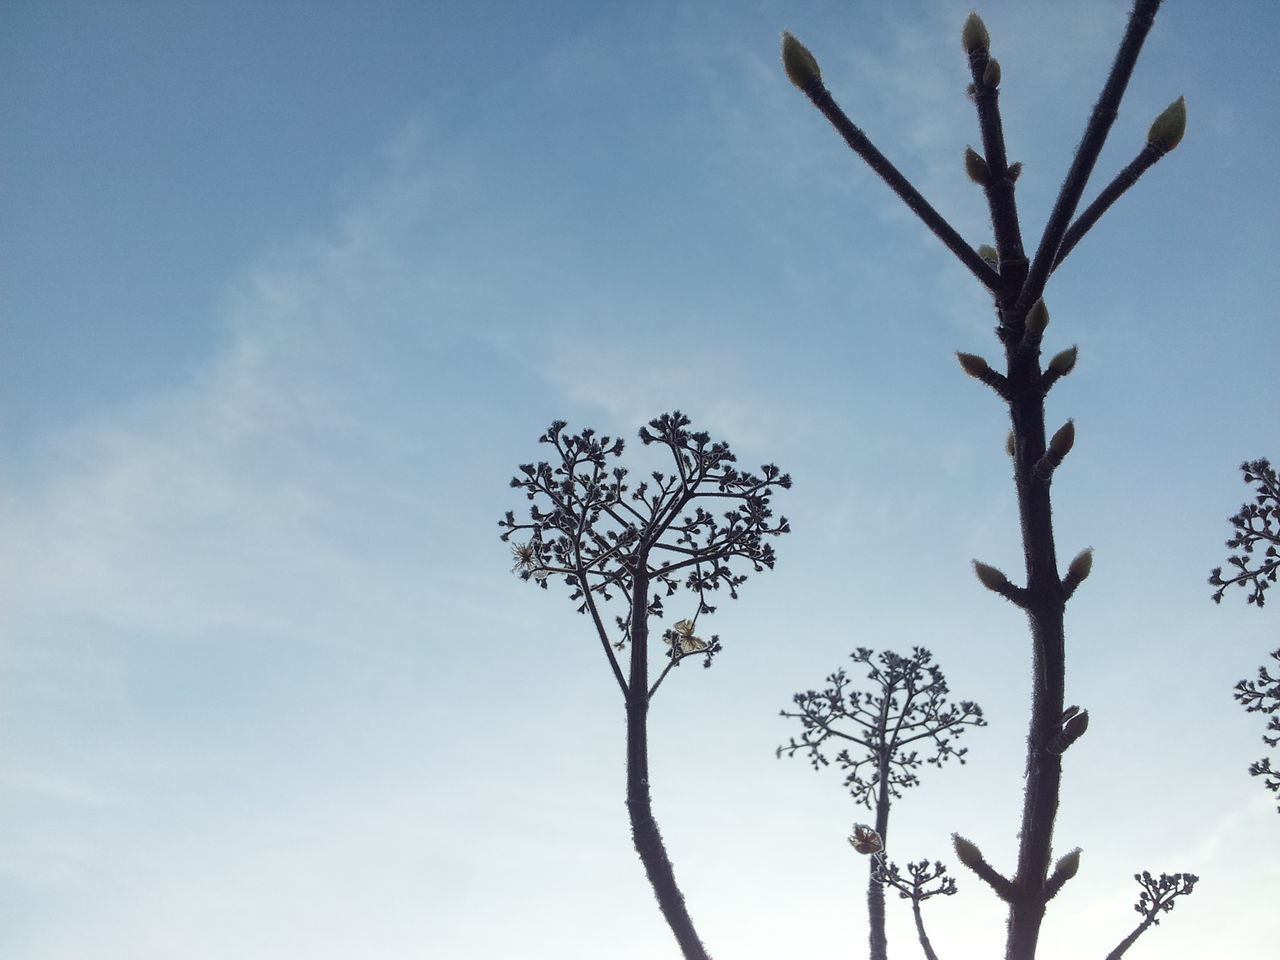 tree, nature, branch, beauty in nature, low angle view, sky, no people, outdoors, day, growth, bare tree, flower, close-up